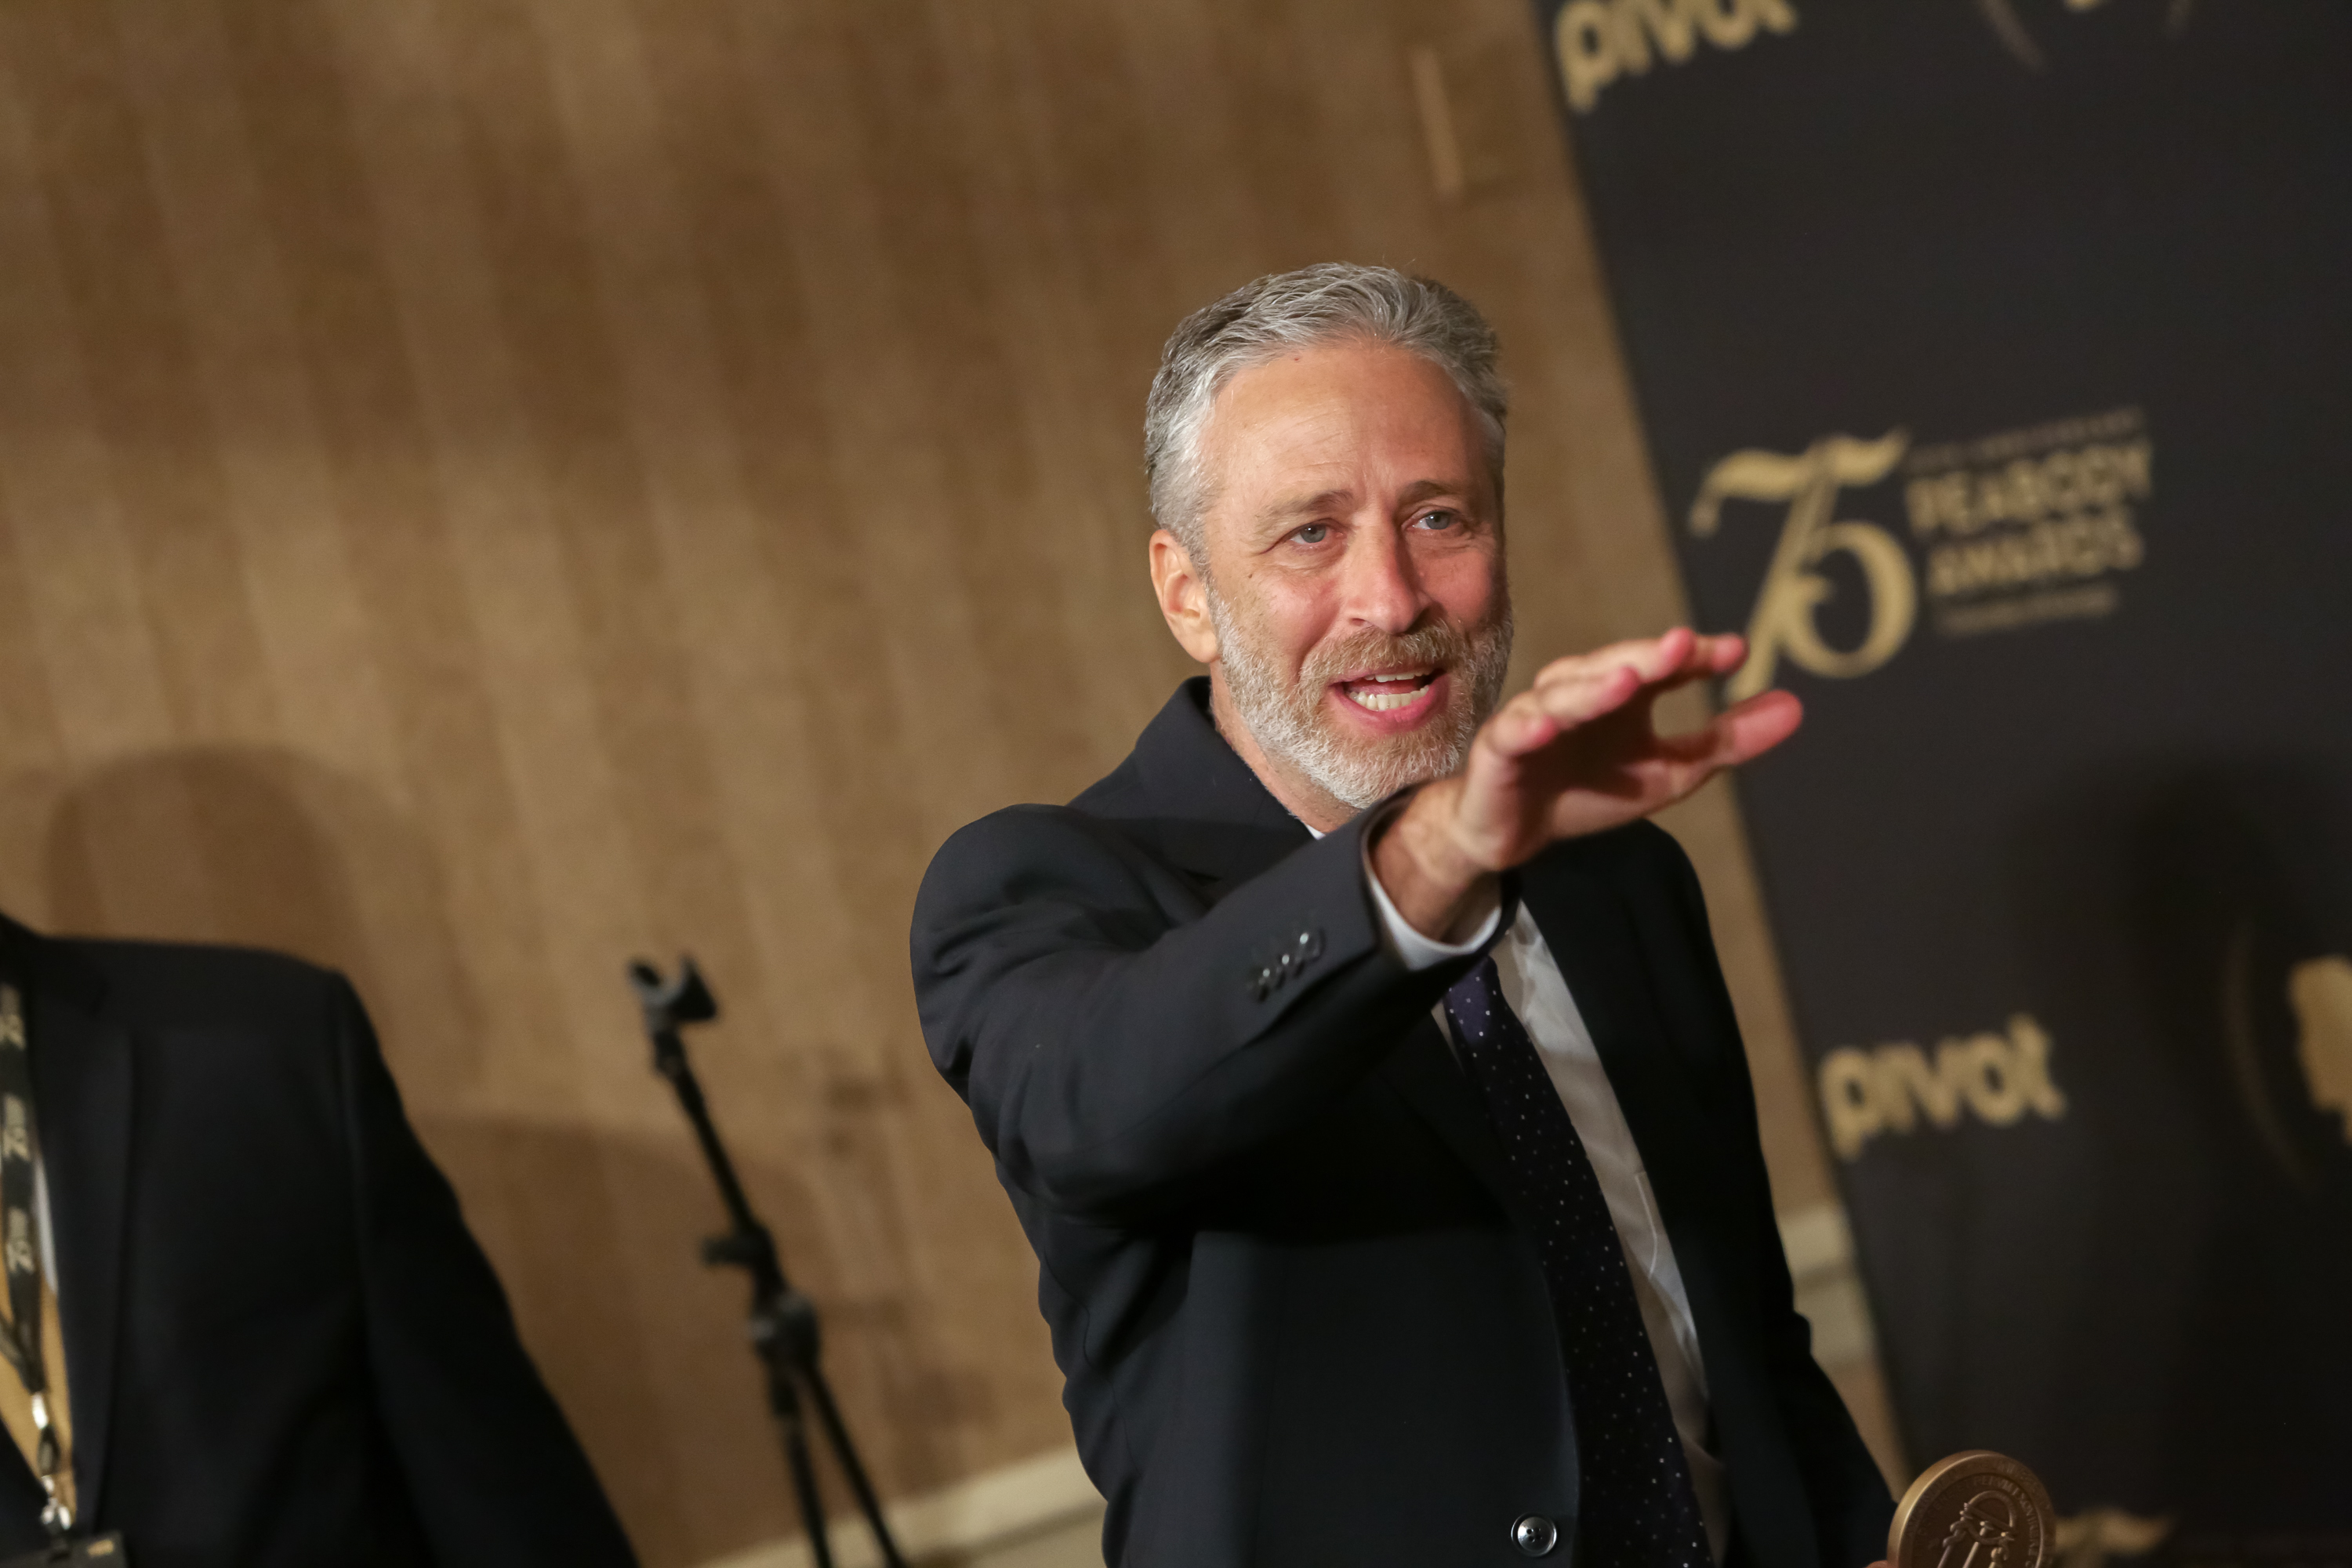 Institutional Award Recipient, The Daily Show with Jon Stewart, comedian/television host Jon Stewart is seen entering the press room during the 75th Annual Peabody Awards Ceremony held at Cipriani Wall Street on May 21, 2016 in New York City.  (Photo by Brent N. Clarke/FilmMagic)